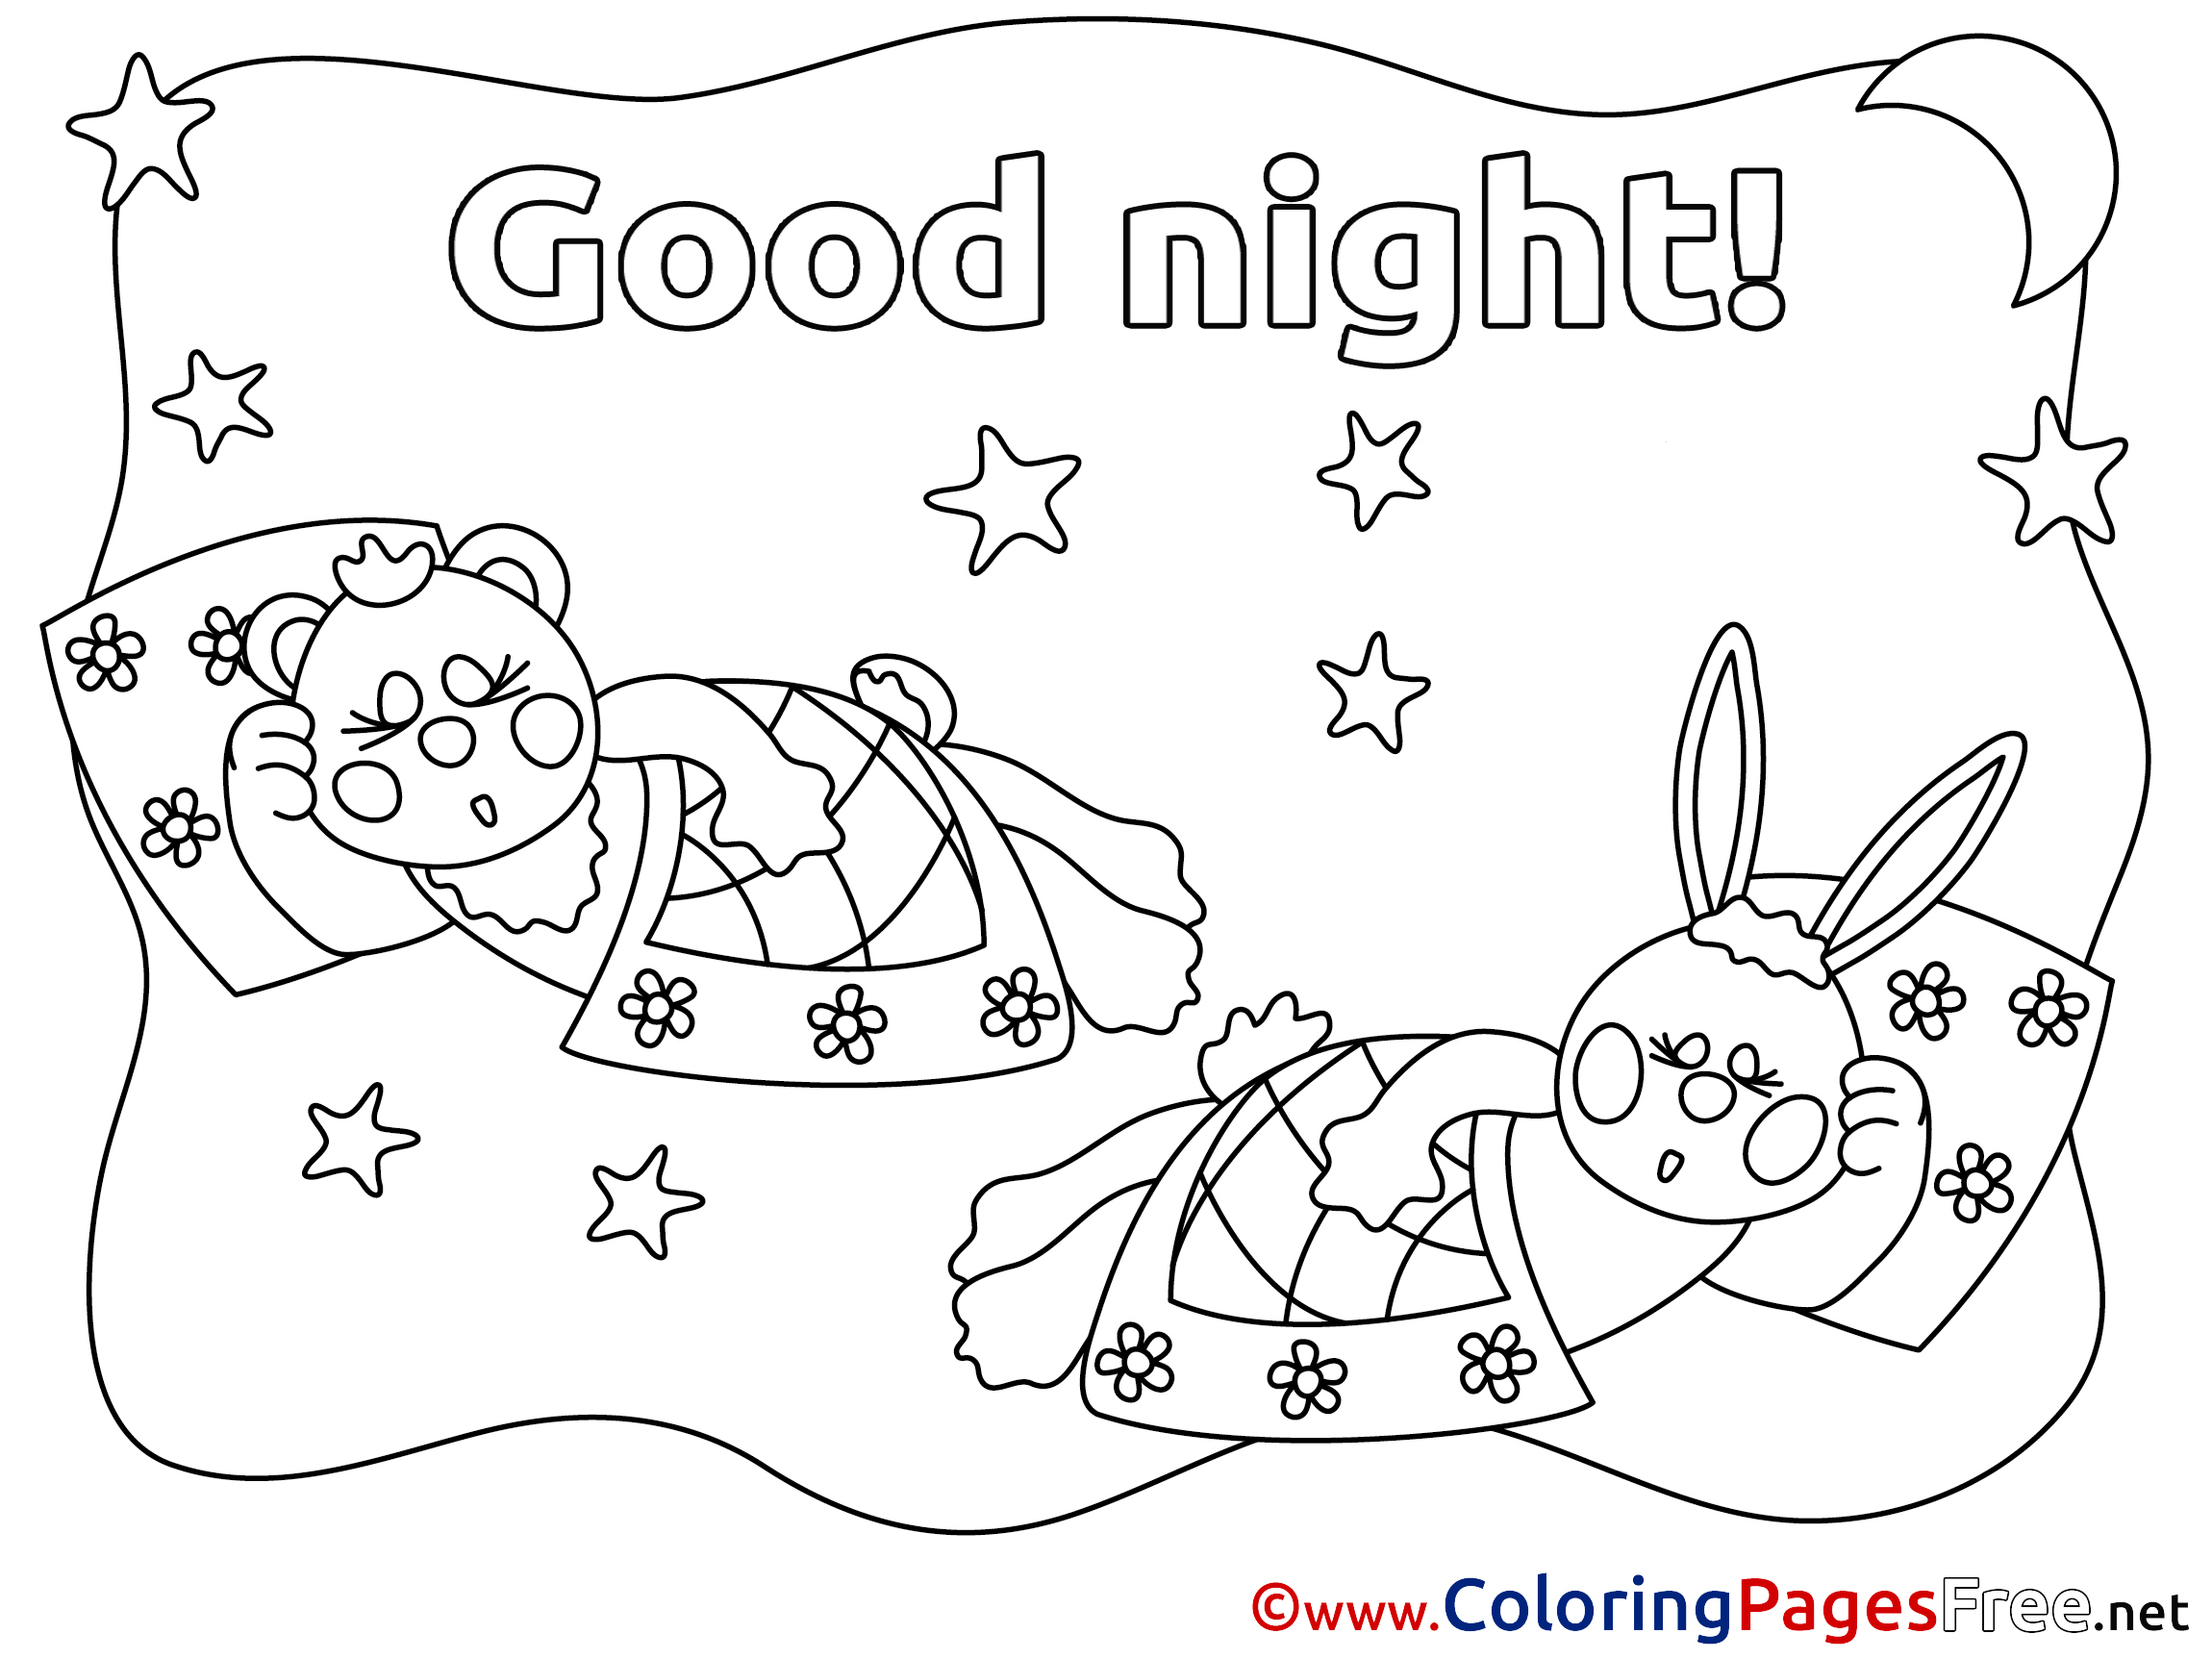 80 Good Night Kids Coloring Pages